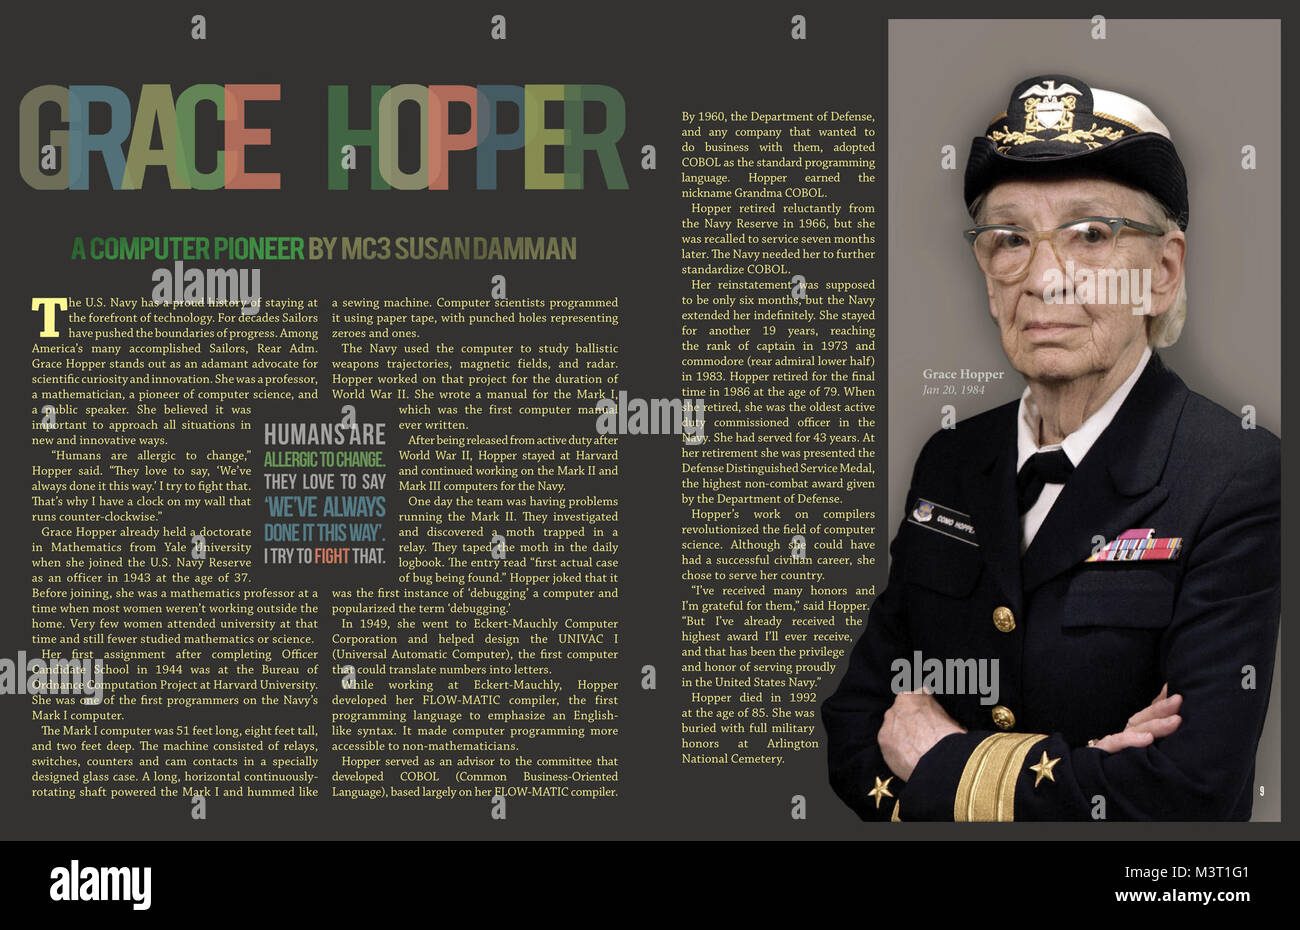 grace hopper biography essay Computer programming pioneer grace murray hopper had an early love of mathematics but also enjoyed play and sports learn about her young life.